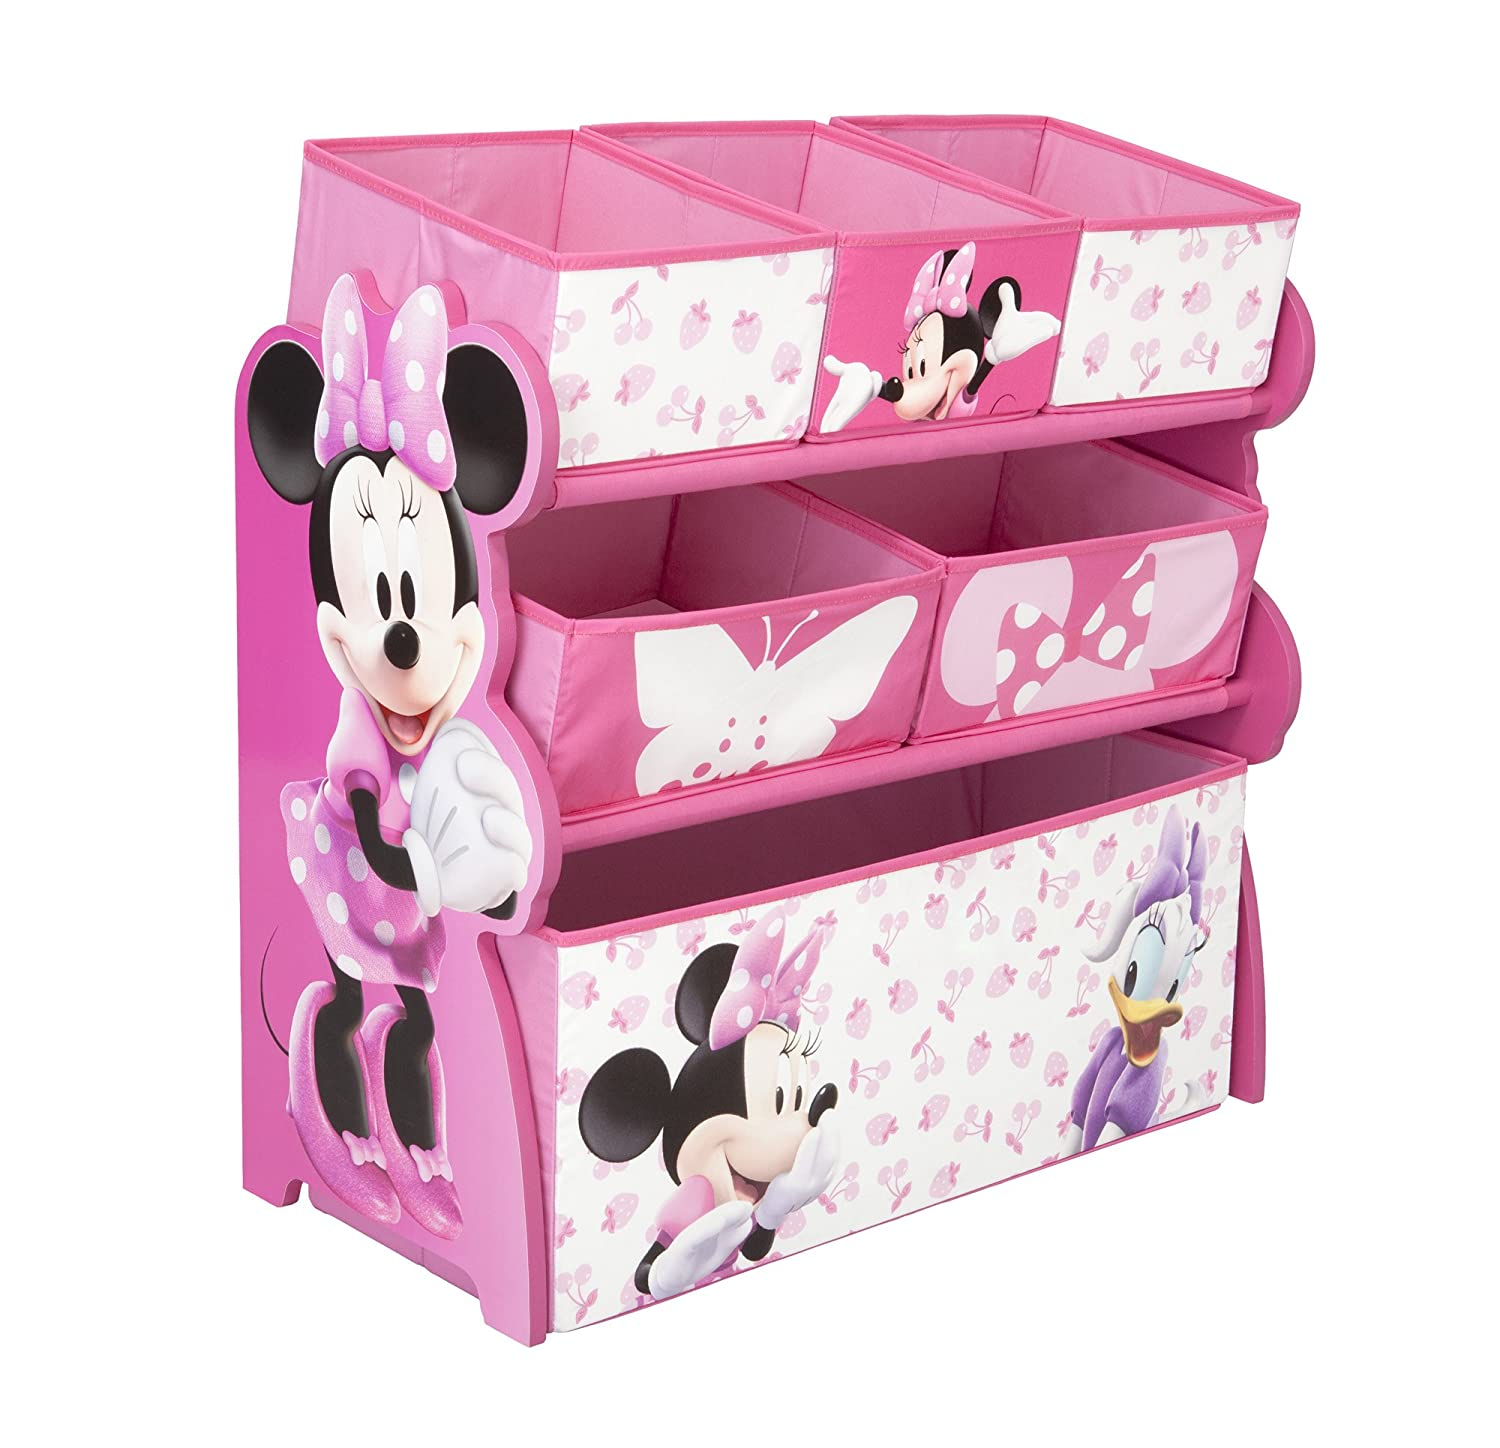 Disney Frozen Multi-Bin Toy Organizer Delta Children TB84986FZ